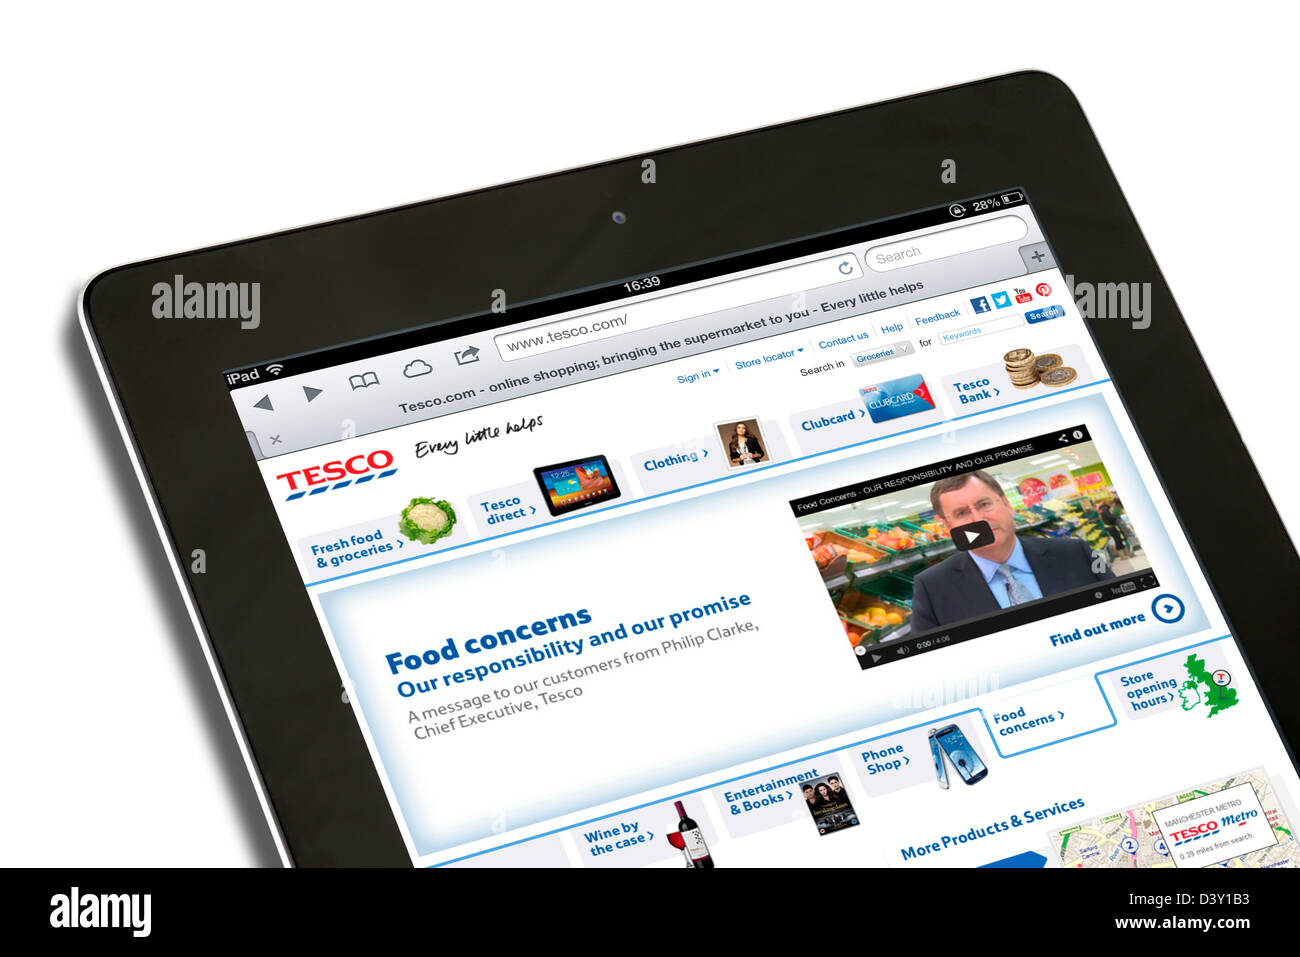 The Tesco website with a video message from Chief Executive Philip Clarke about the horsemeat scandal in February - Stock Image